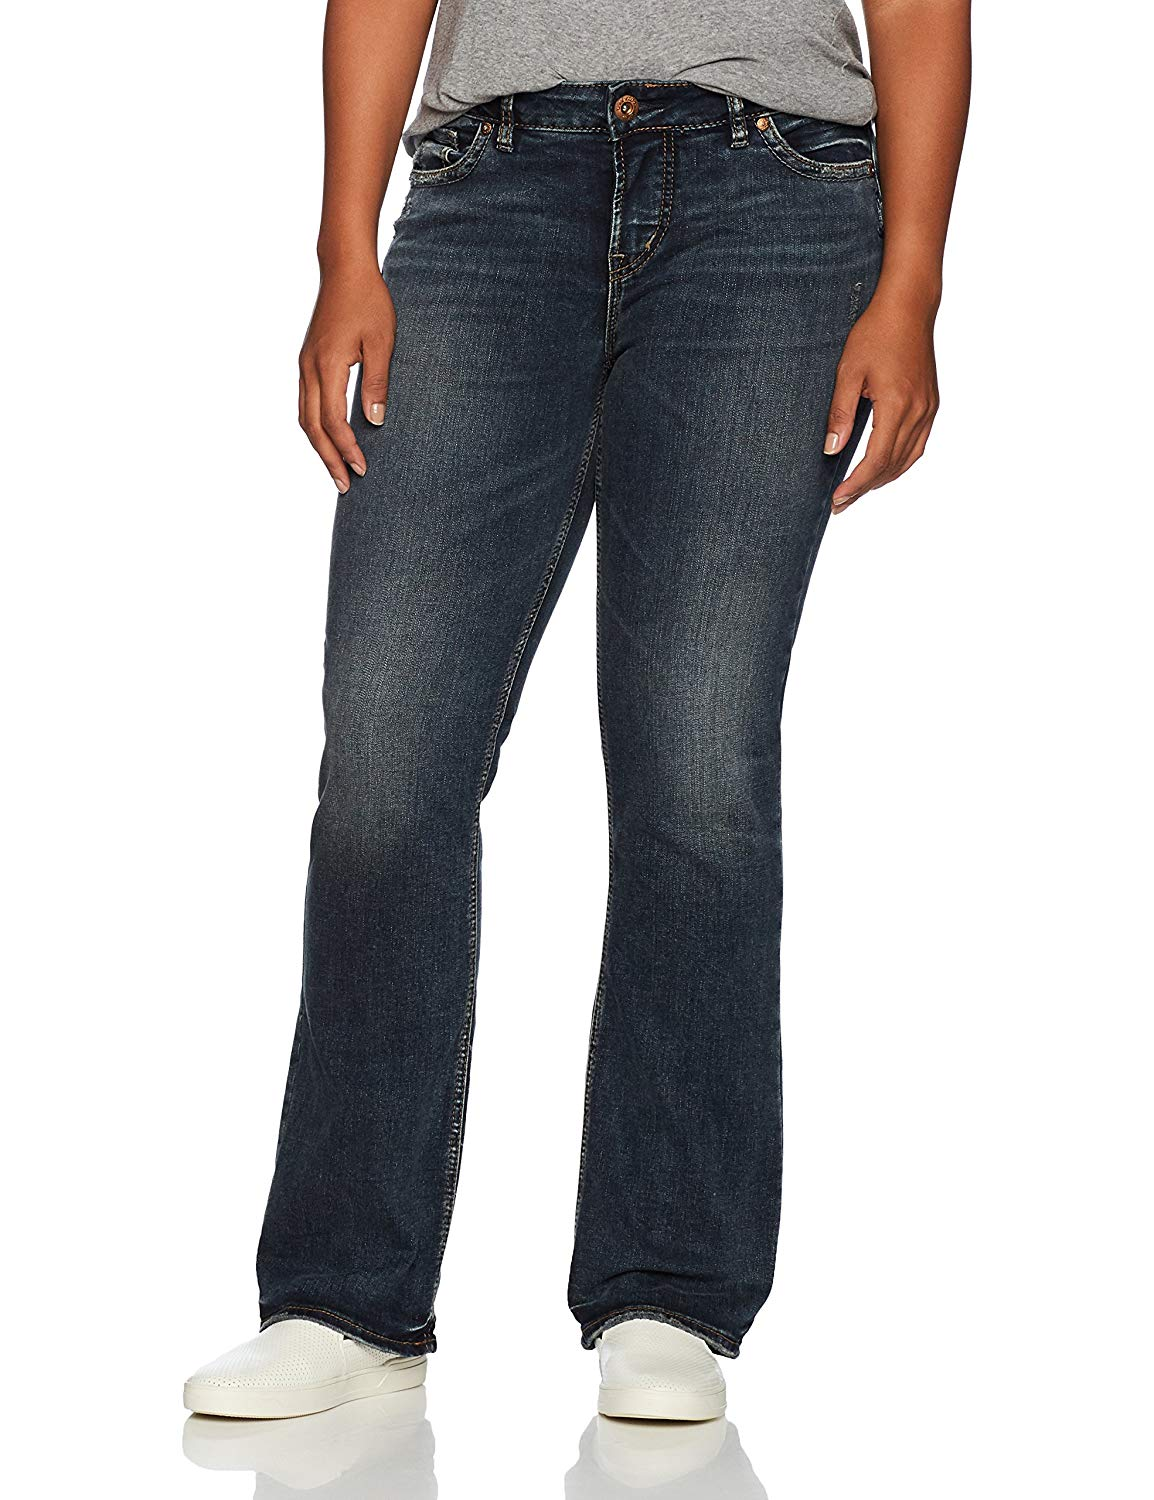 star-spread-womens-petite-lowrider-jeans-ugly